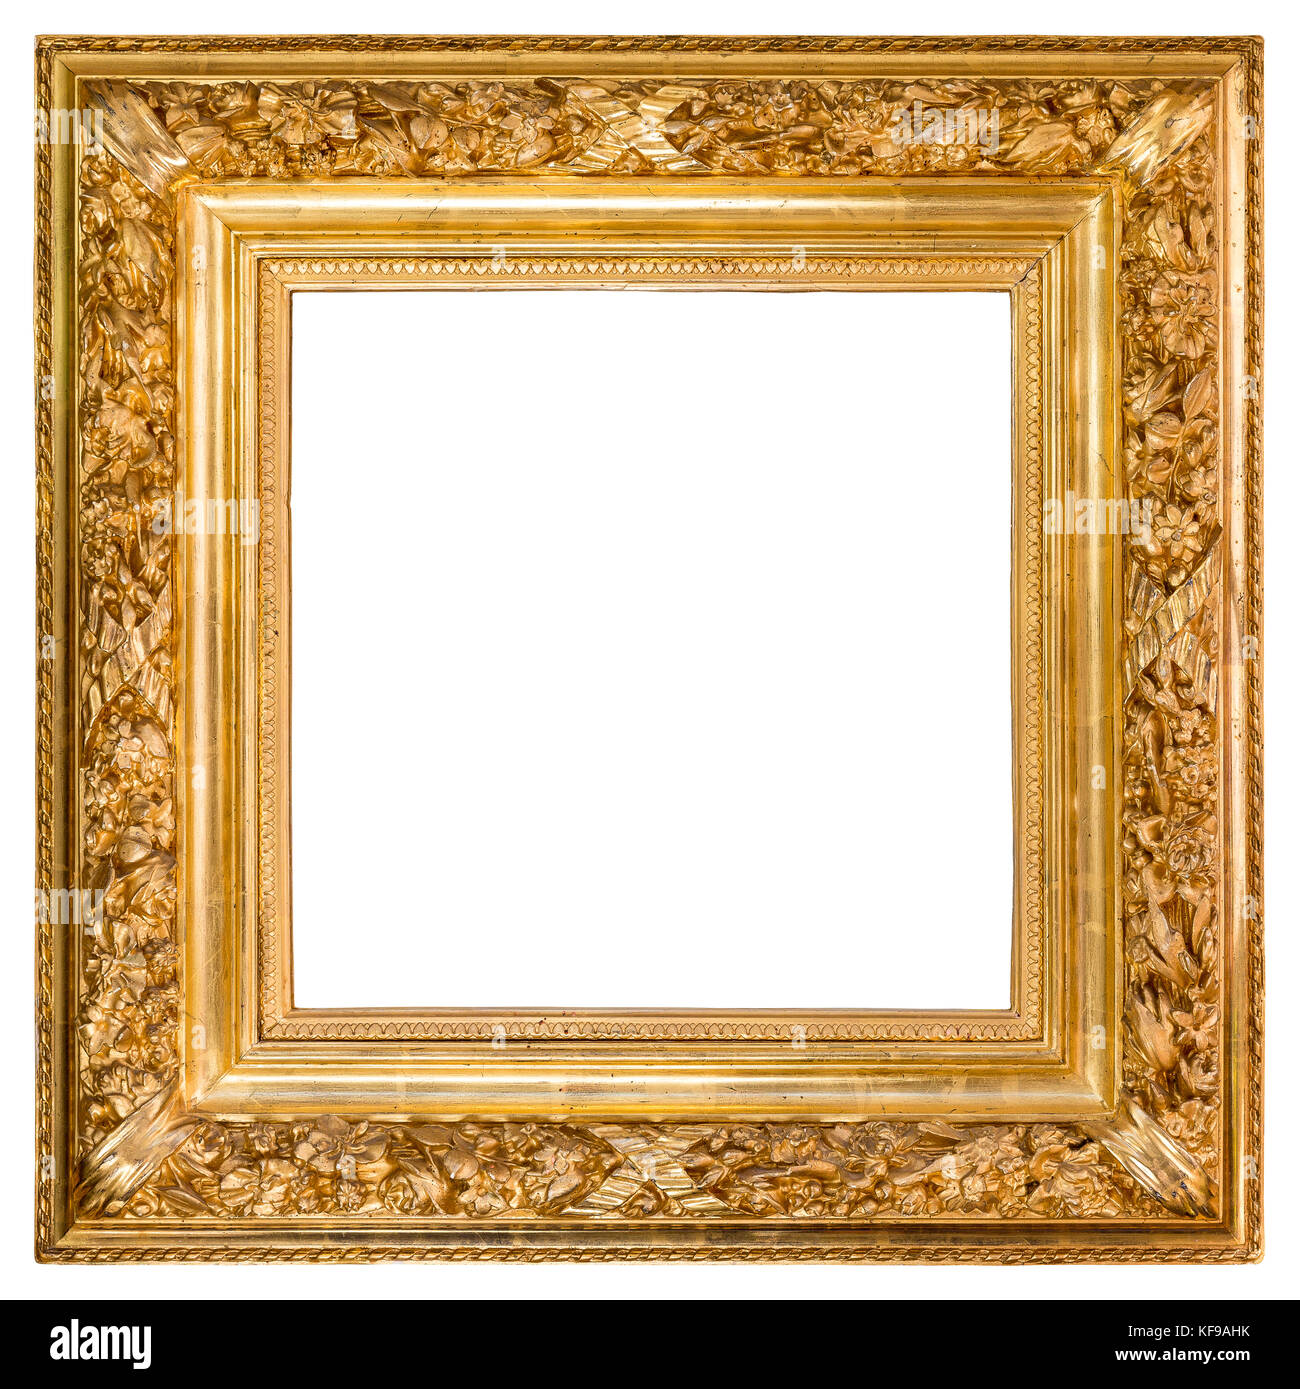 Mirror Gold Frame Stockfotos & Mirror Gold Frame Bilder - Alamy